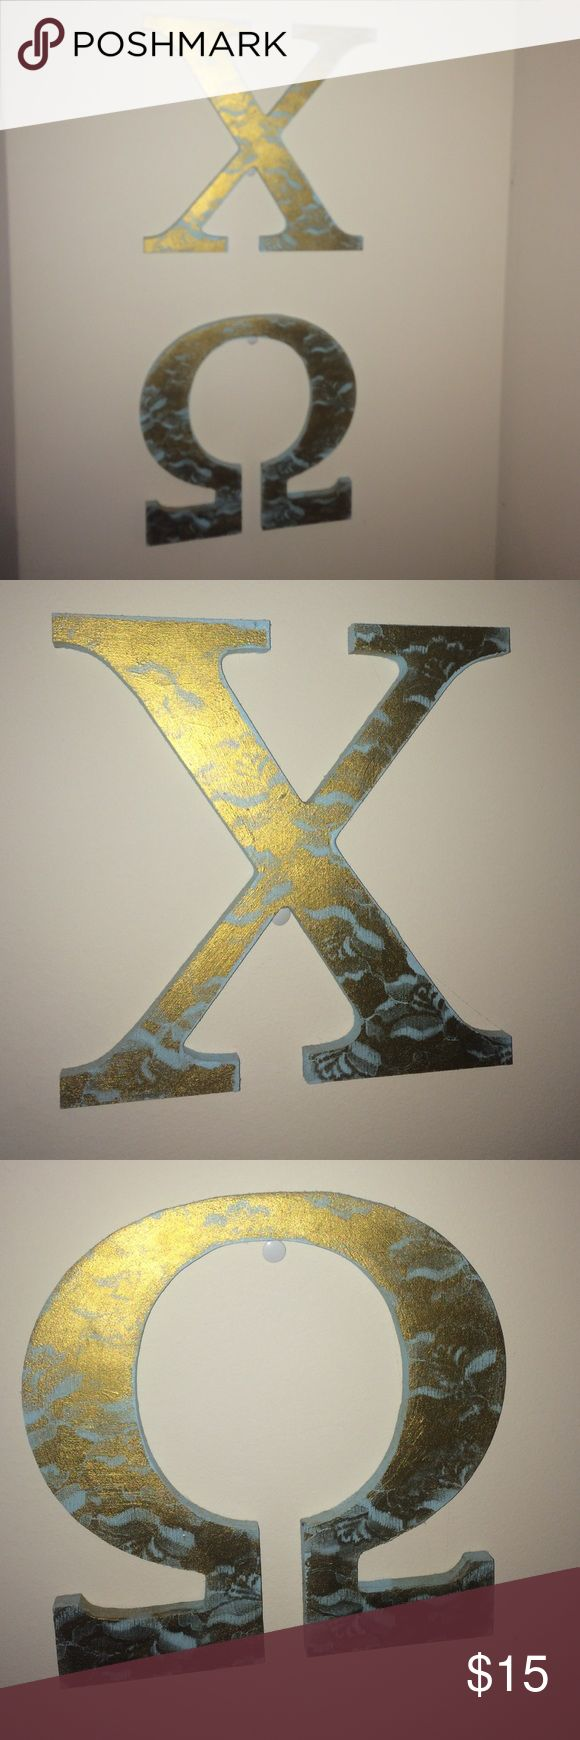 Hand painted chi omega letters Hand painted metallic gold and light blue chi omega letters Other